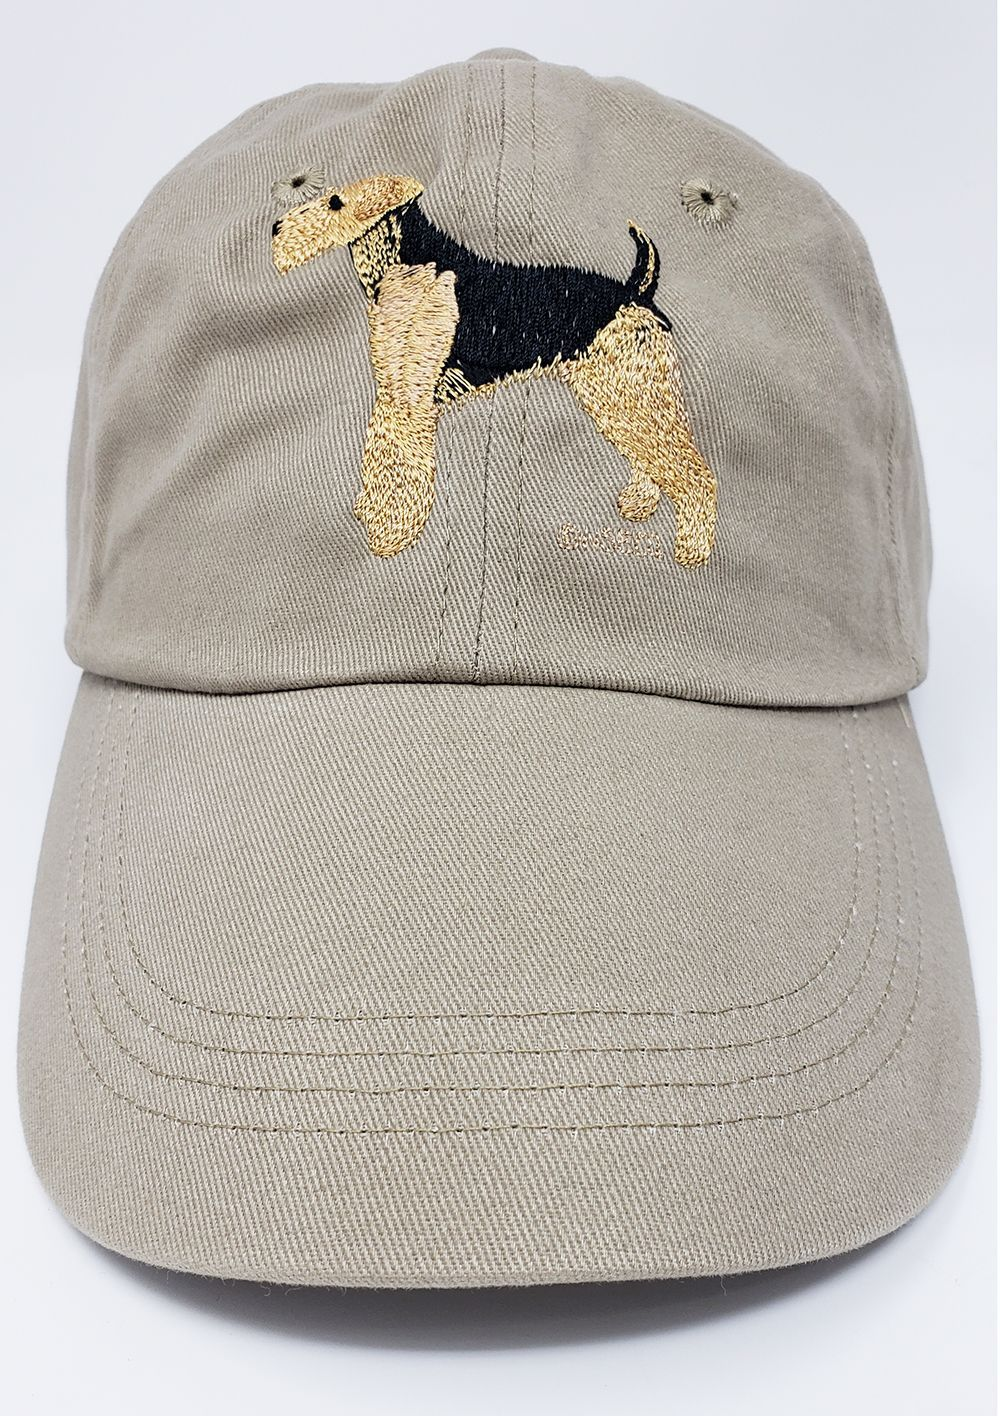 Airedale Terrier Hat